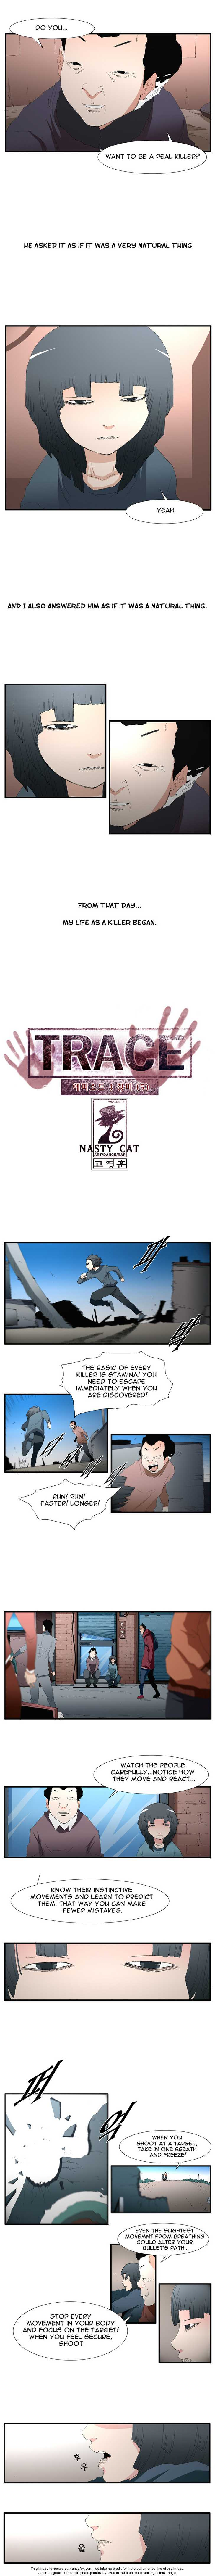 Trace 5 Page 1